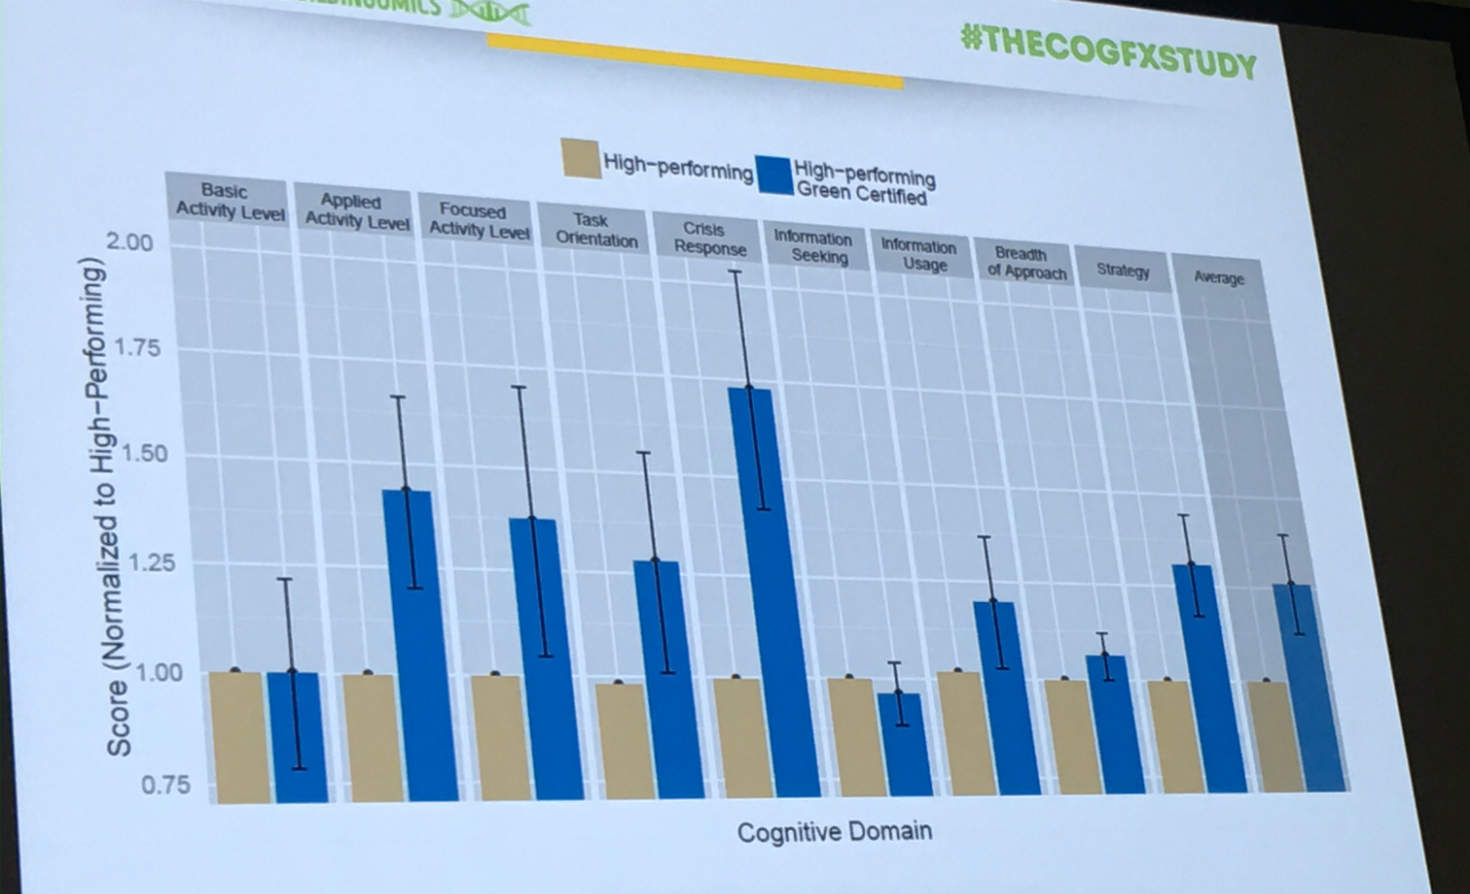 A chart from the new COGFX study distinguishes between results in high-performing buildings and green-certified buildings.